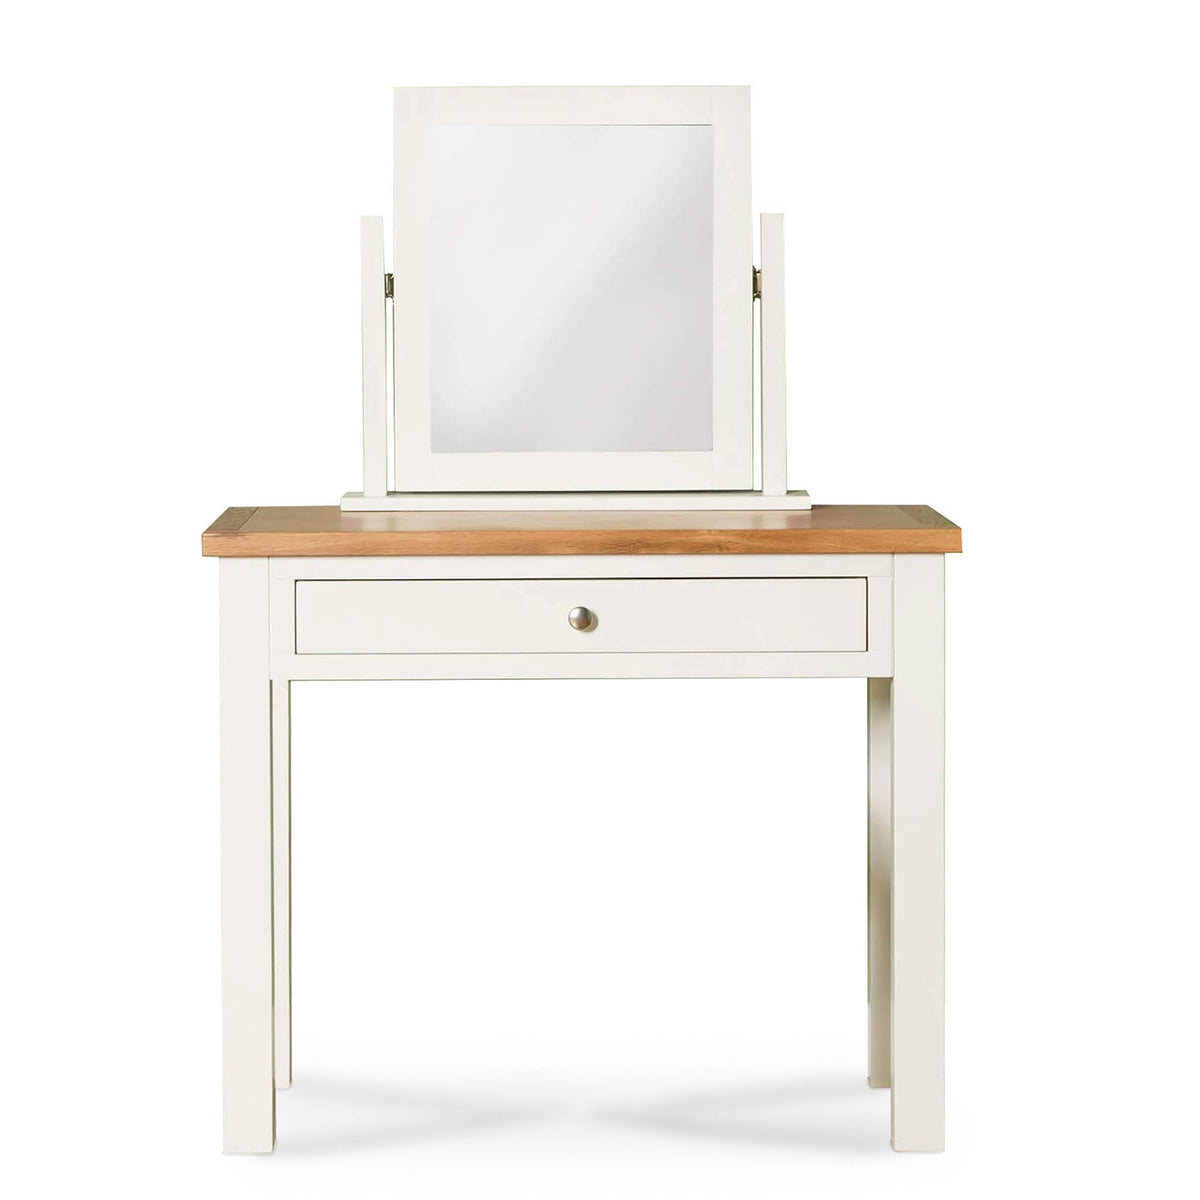 Farrow White Dressing Table Set - Dressing table and mirror front view